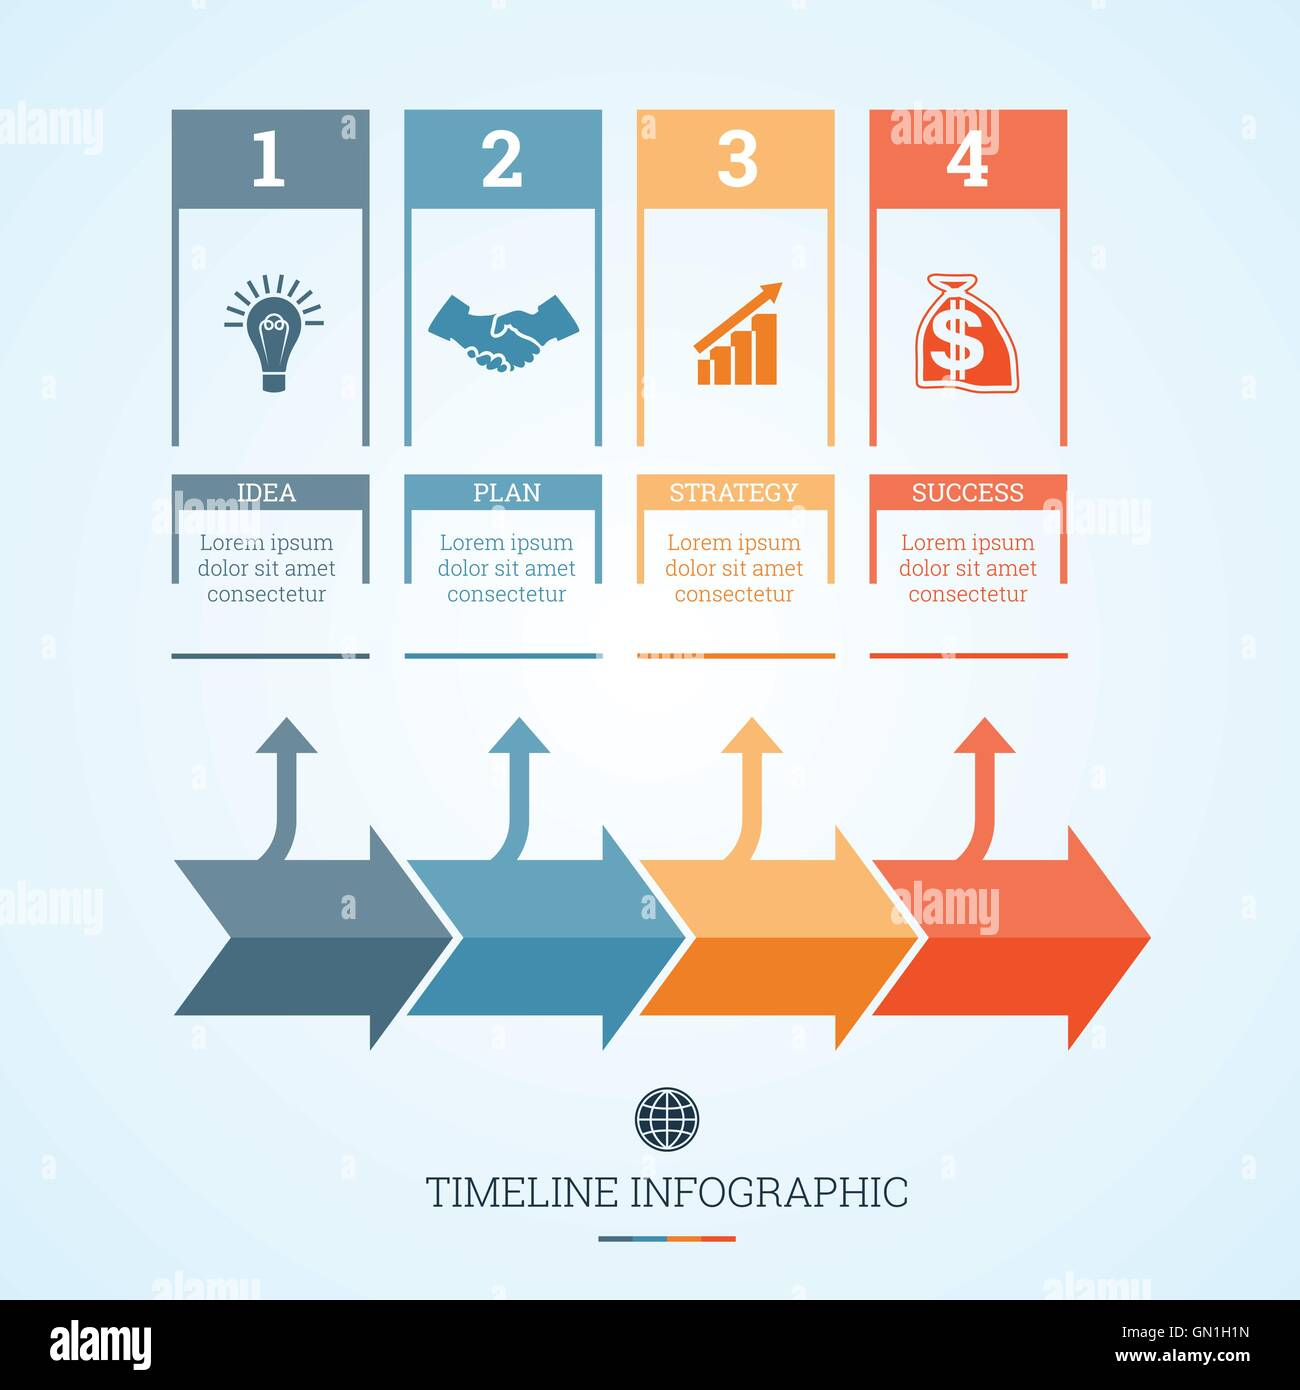 conceptual business timeline infographic vector design template for